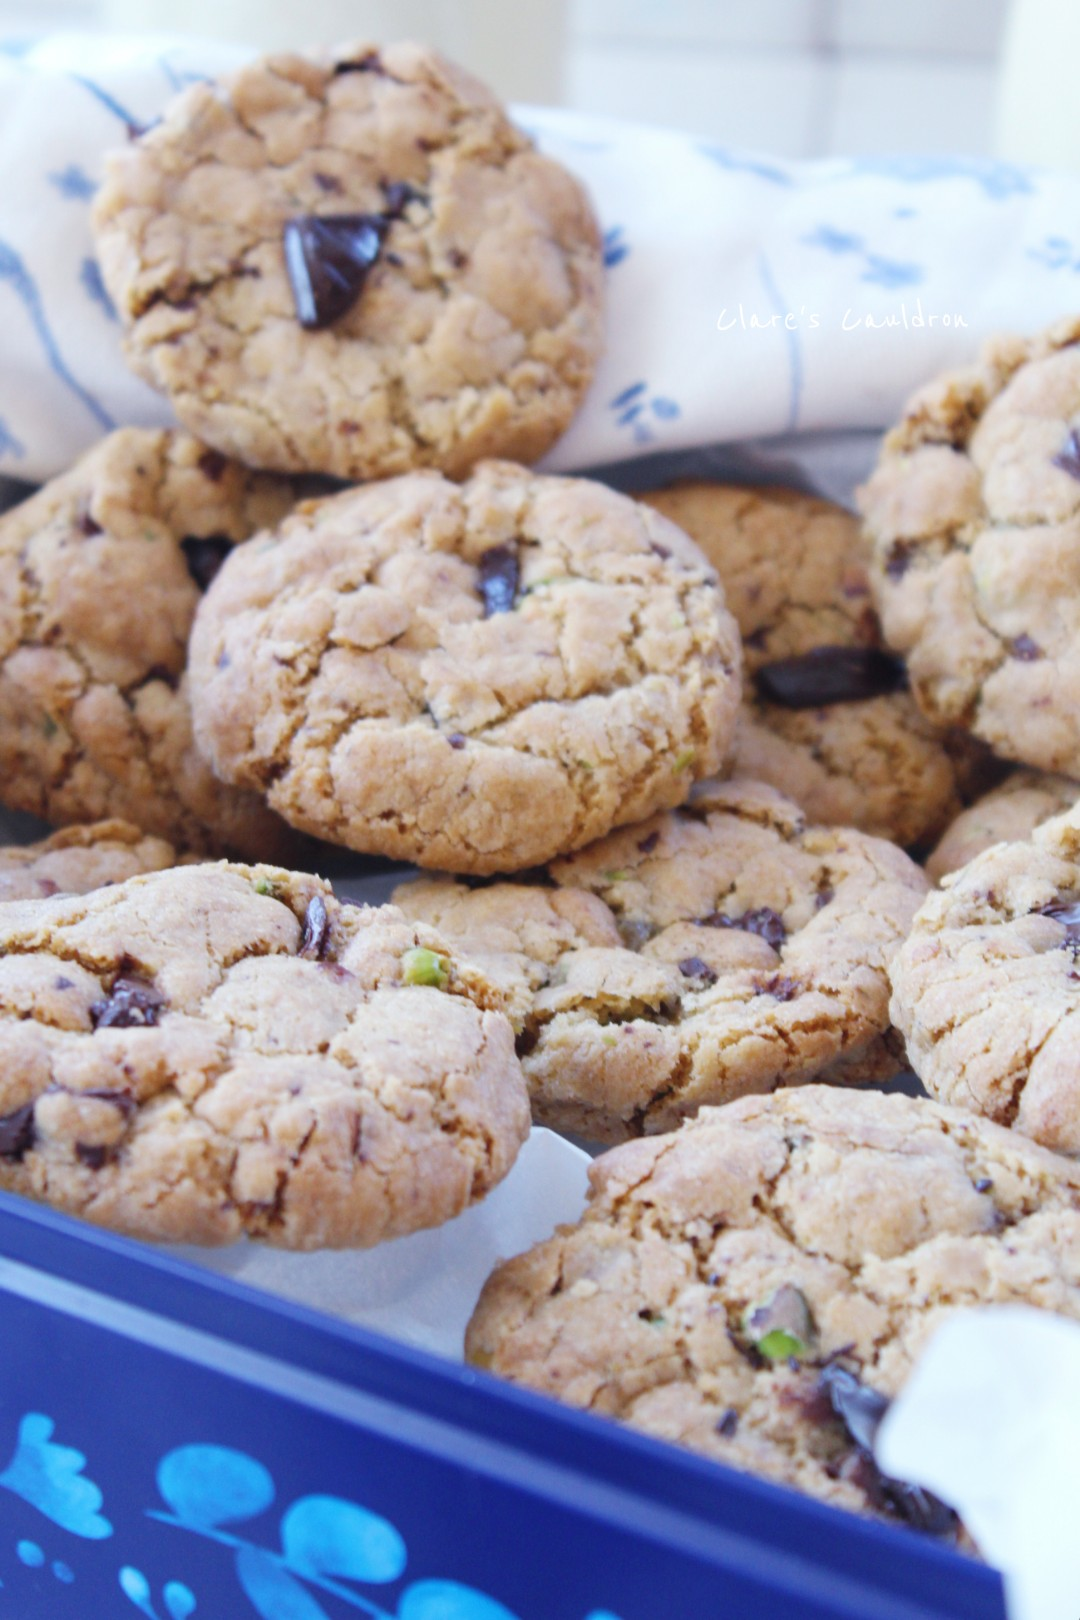 Pistachio and Chocolate Cookies orBiscuits